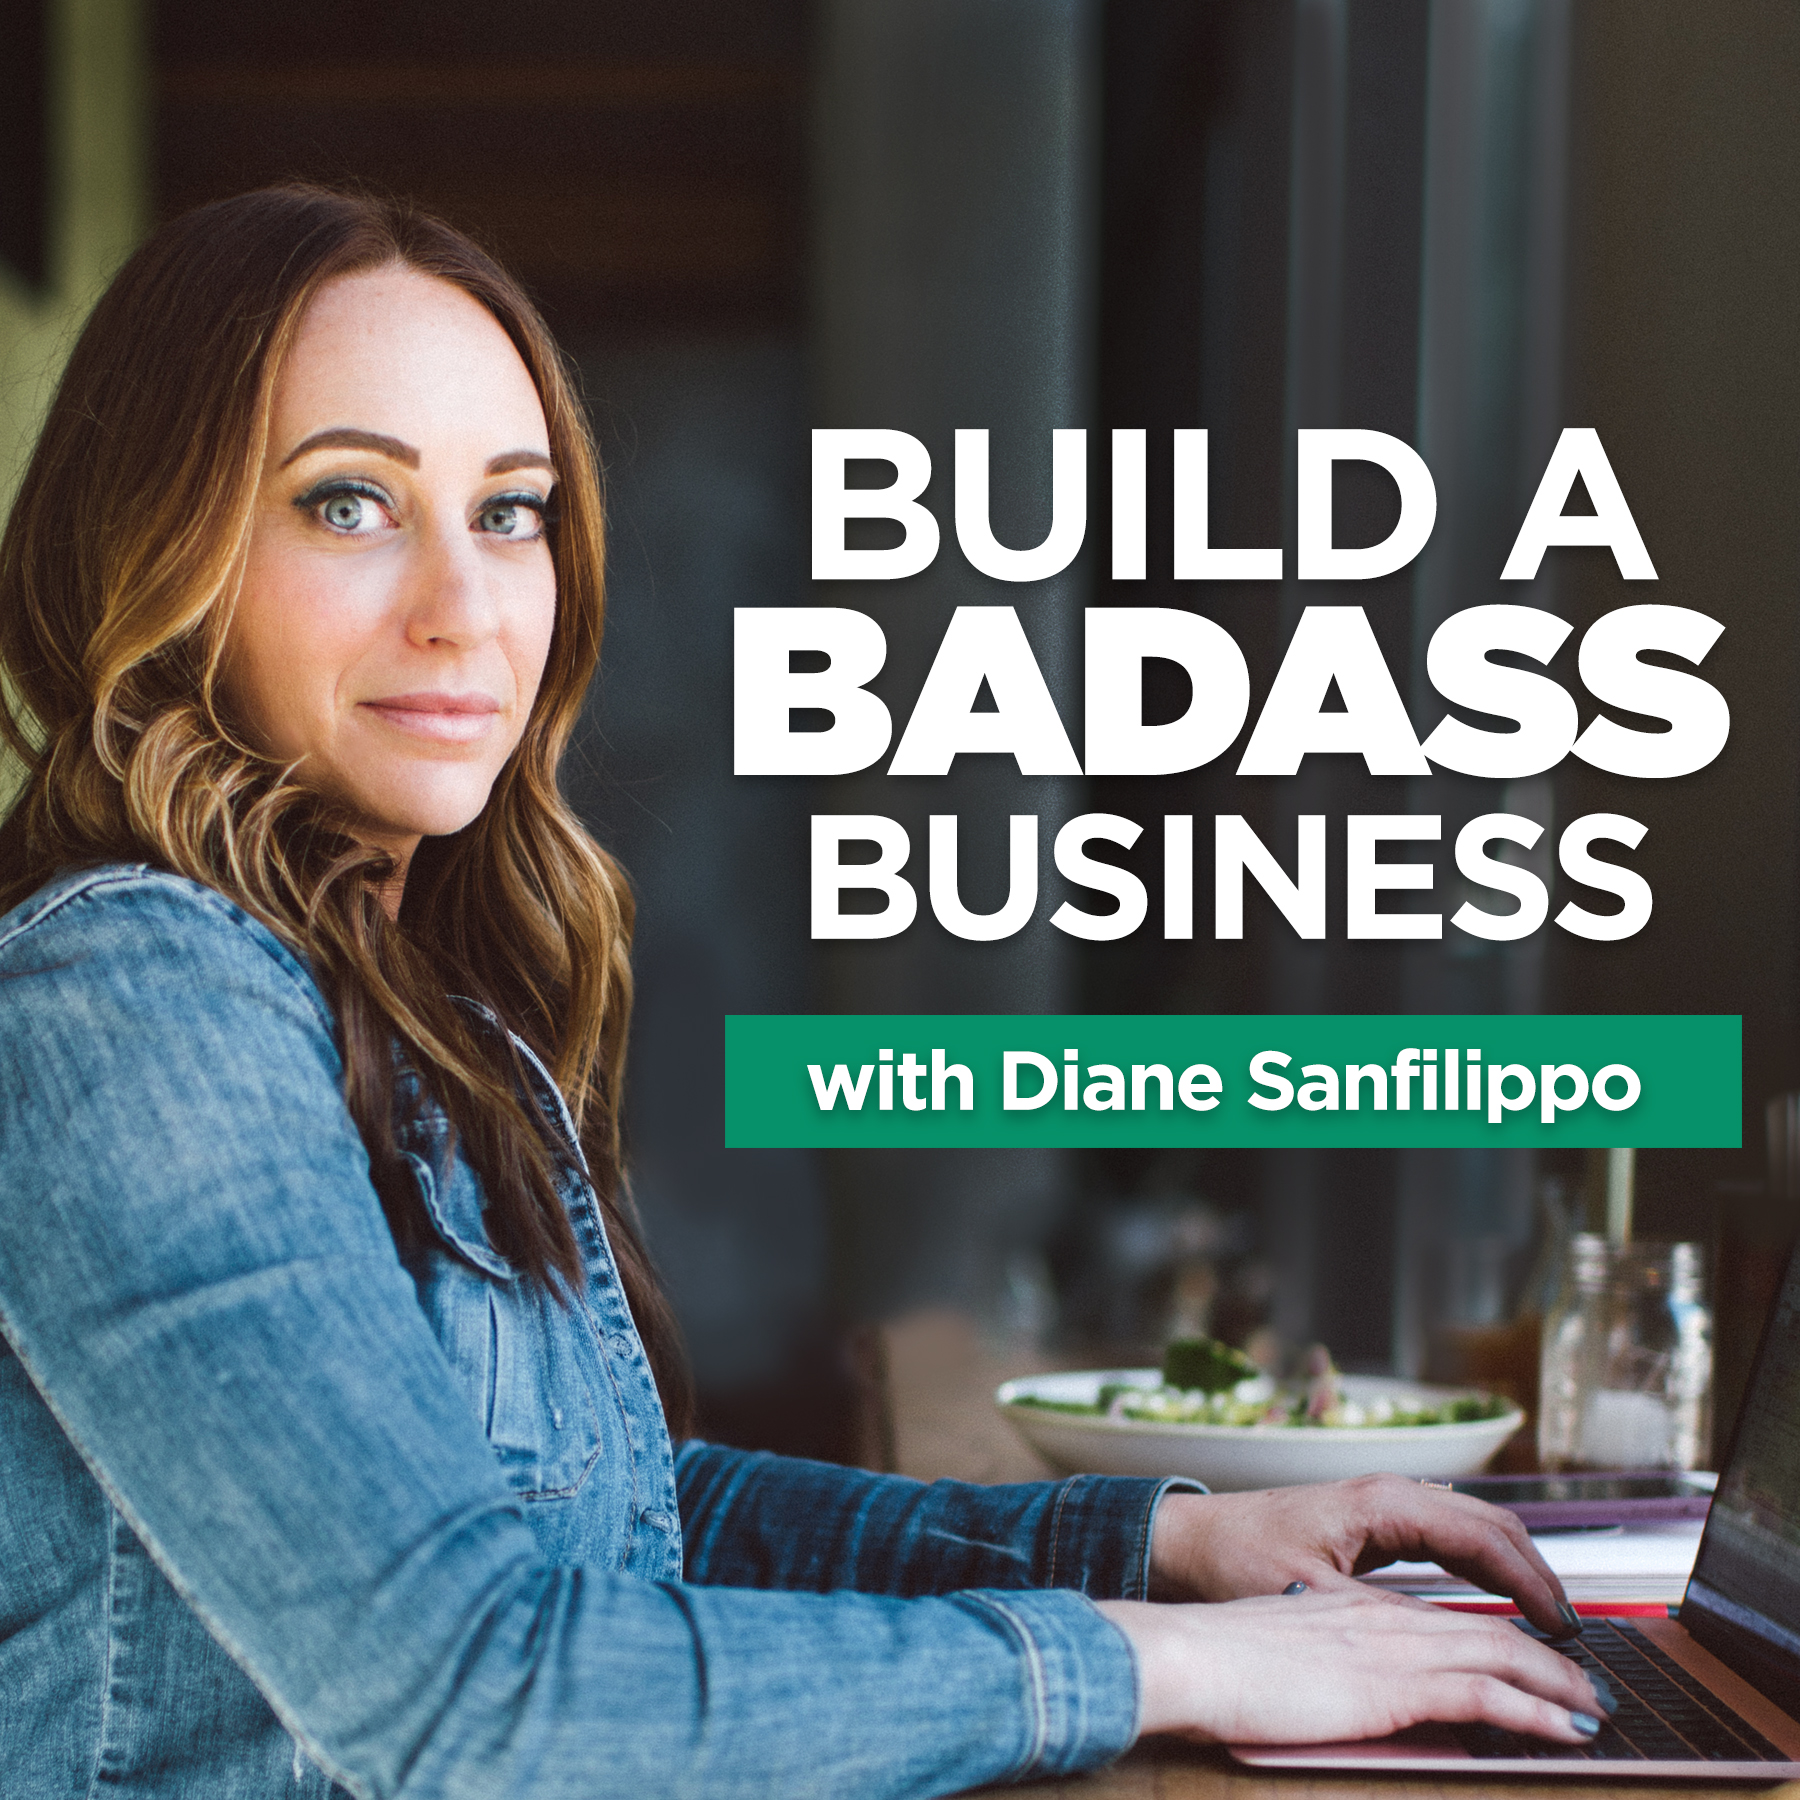 Build a Badass Business with Diane Sanfilippo